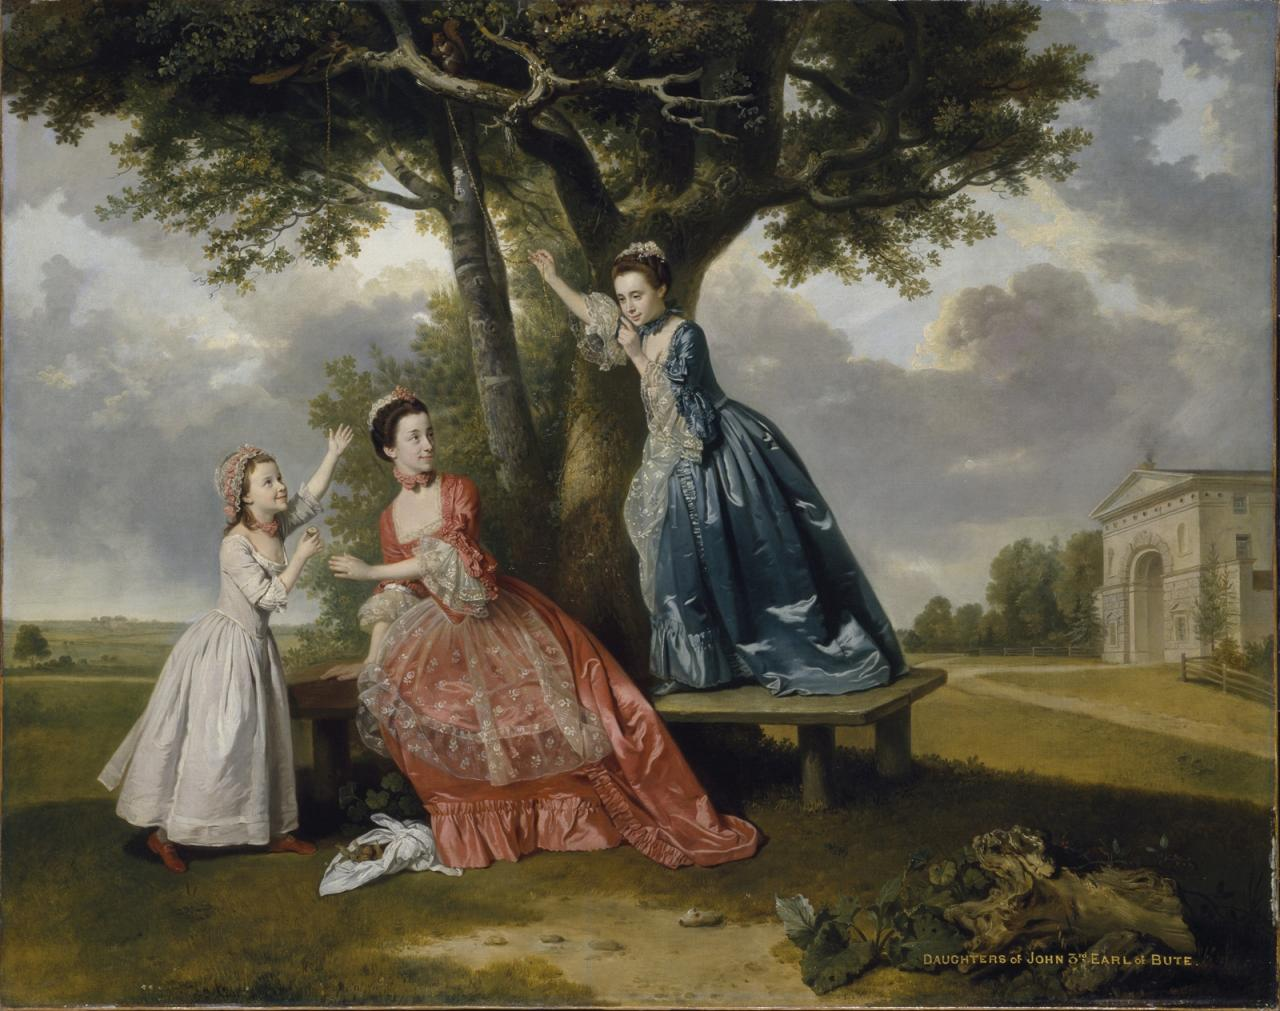 Johann Zoffany,Three Daughters of John, 3rd Earl of Bute image